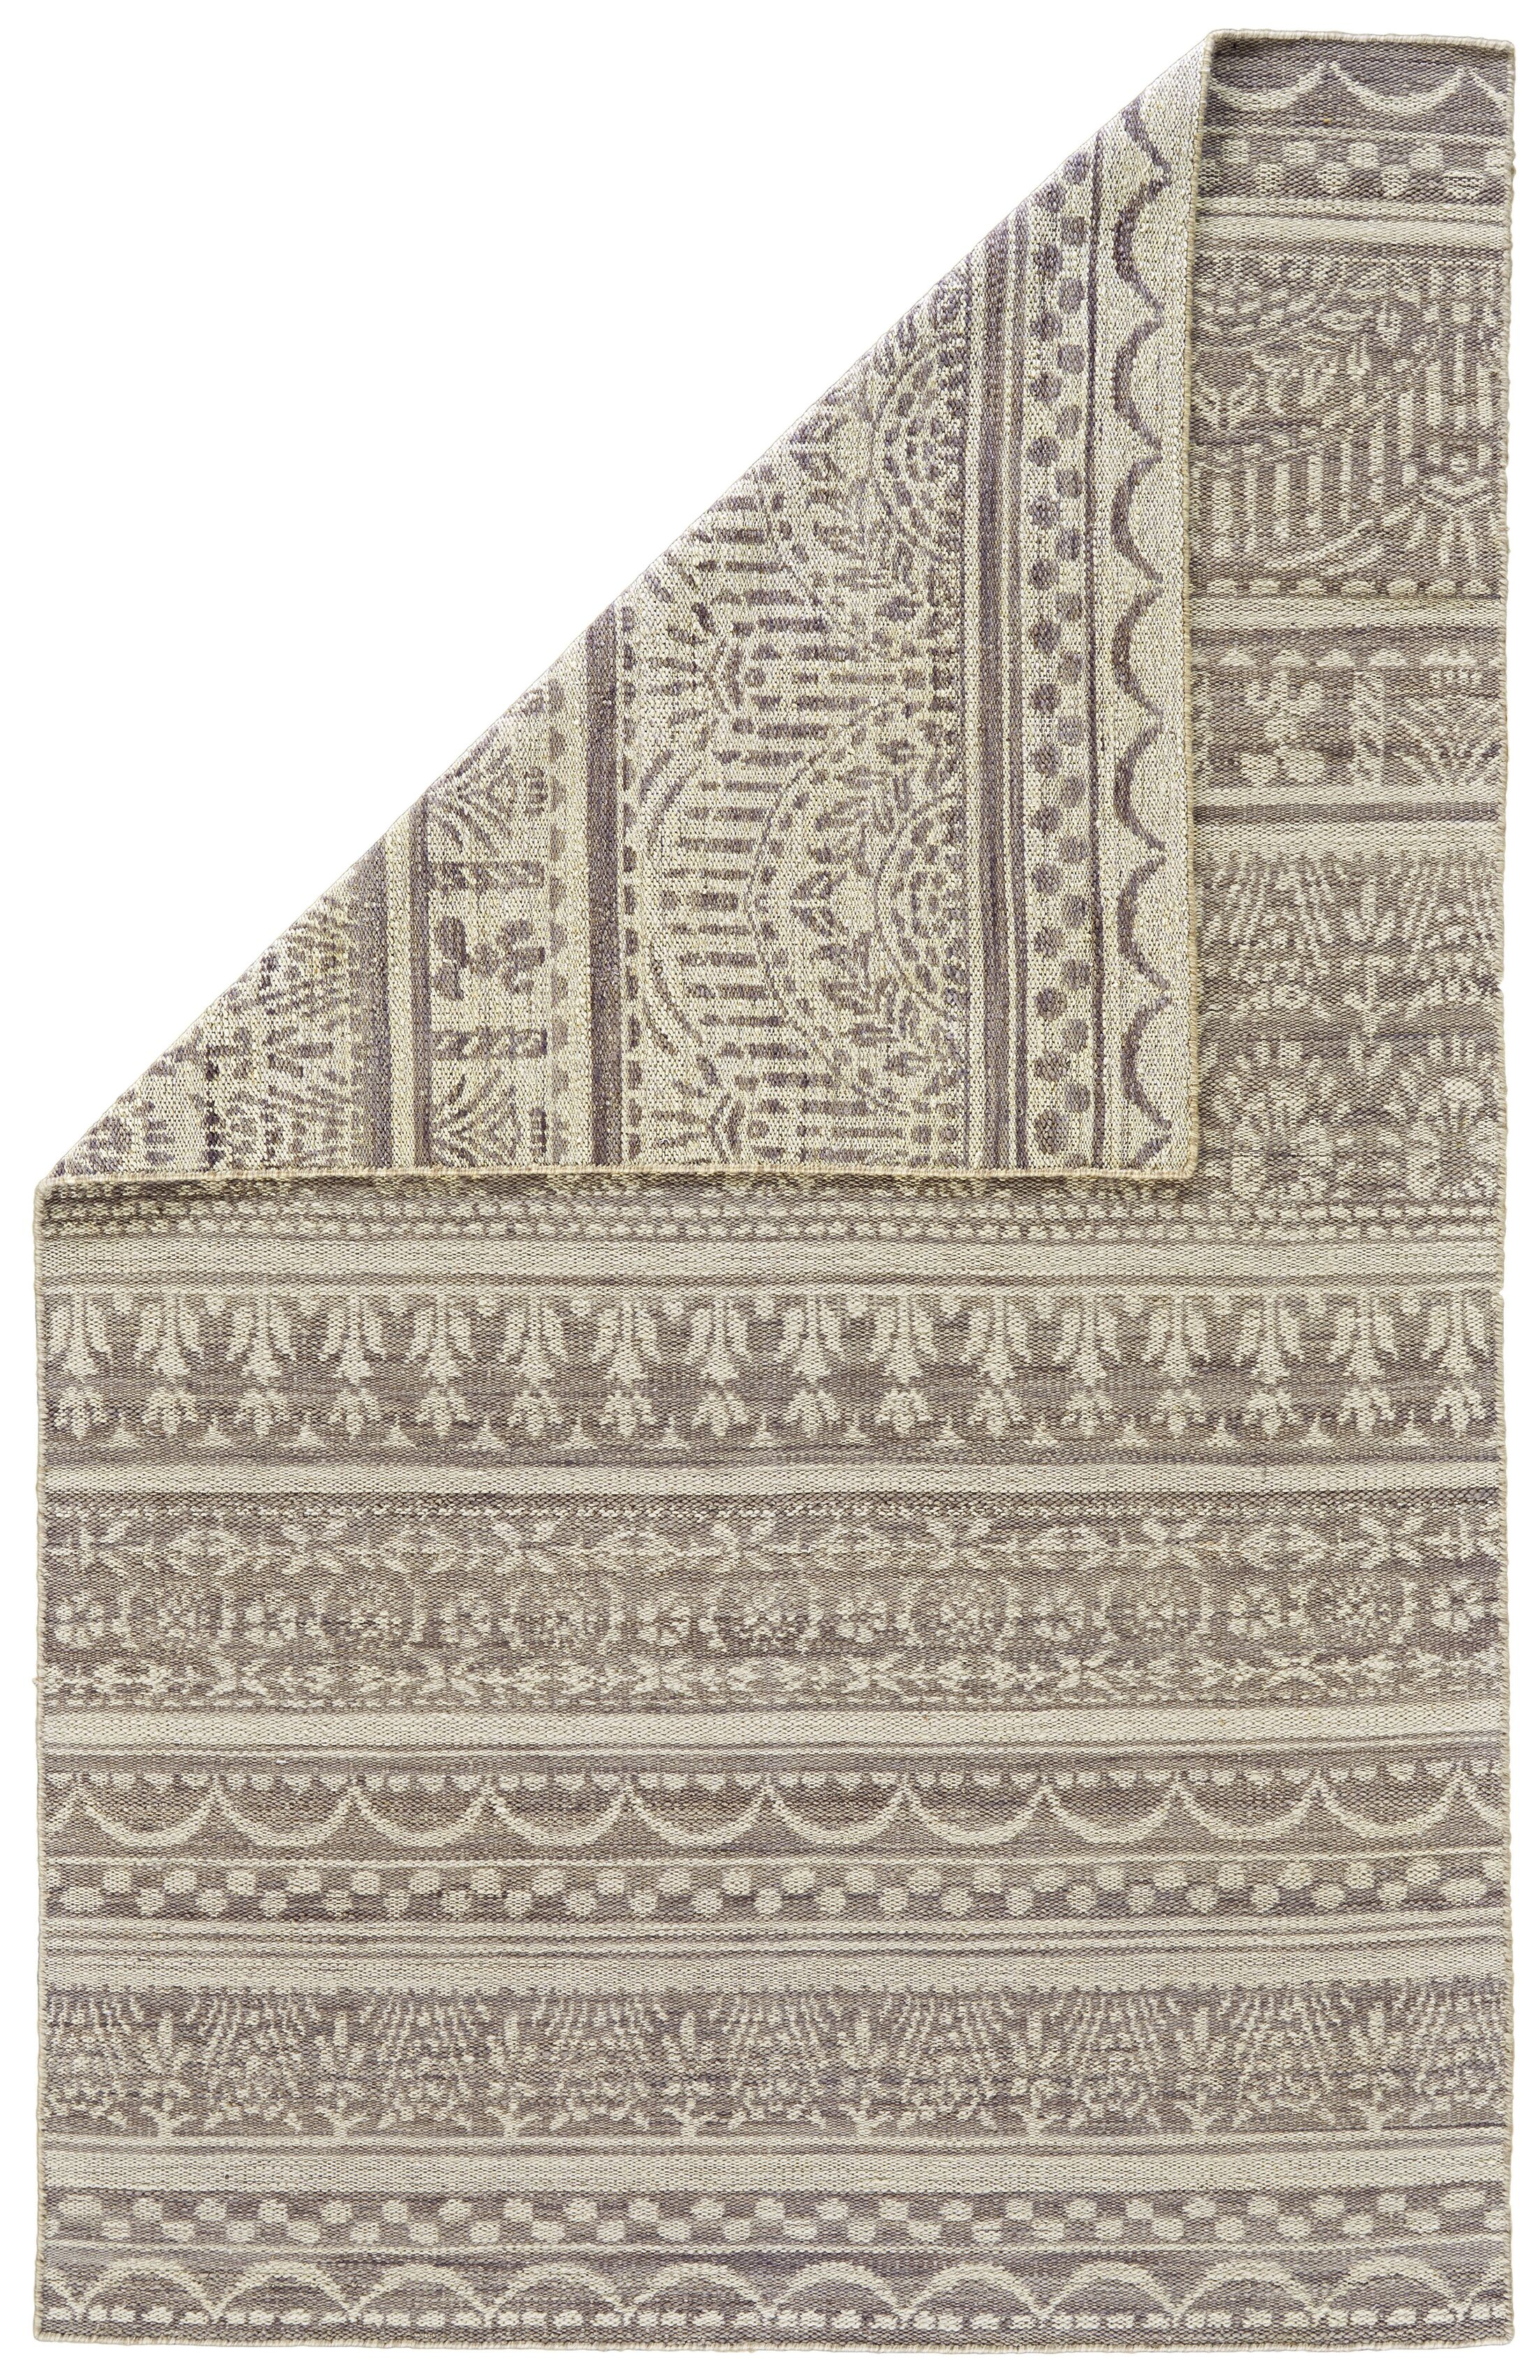 Reiber Hand-Woven Wool Gray/White Area Rug Rug Size: Round 8'